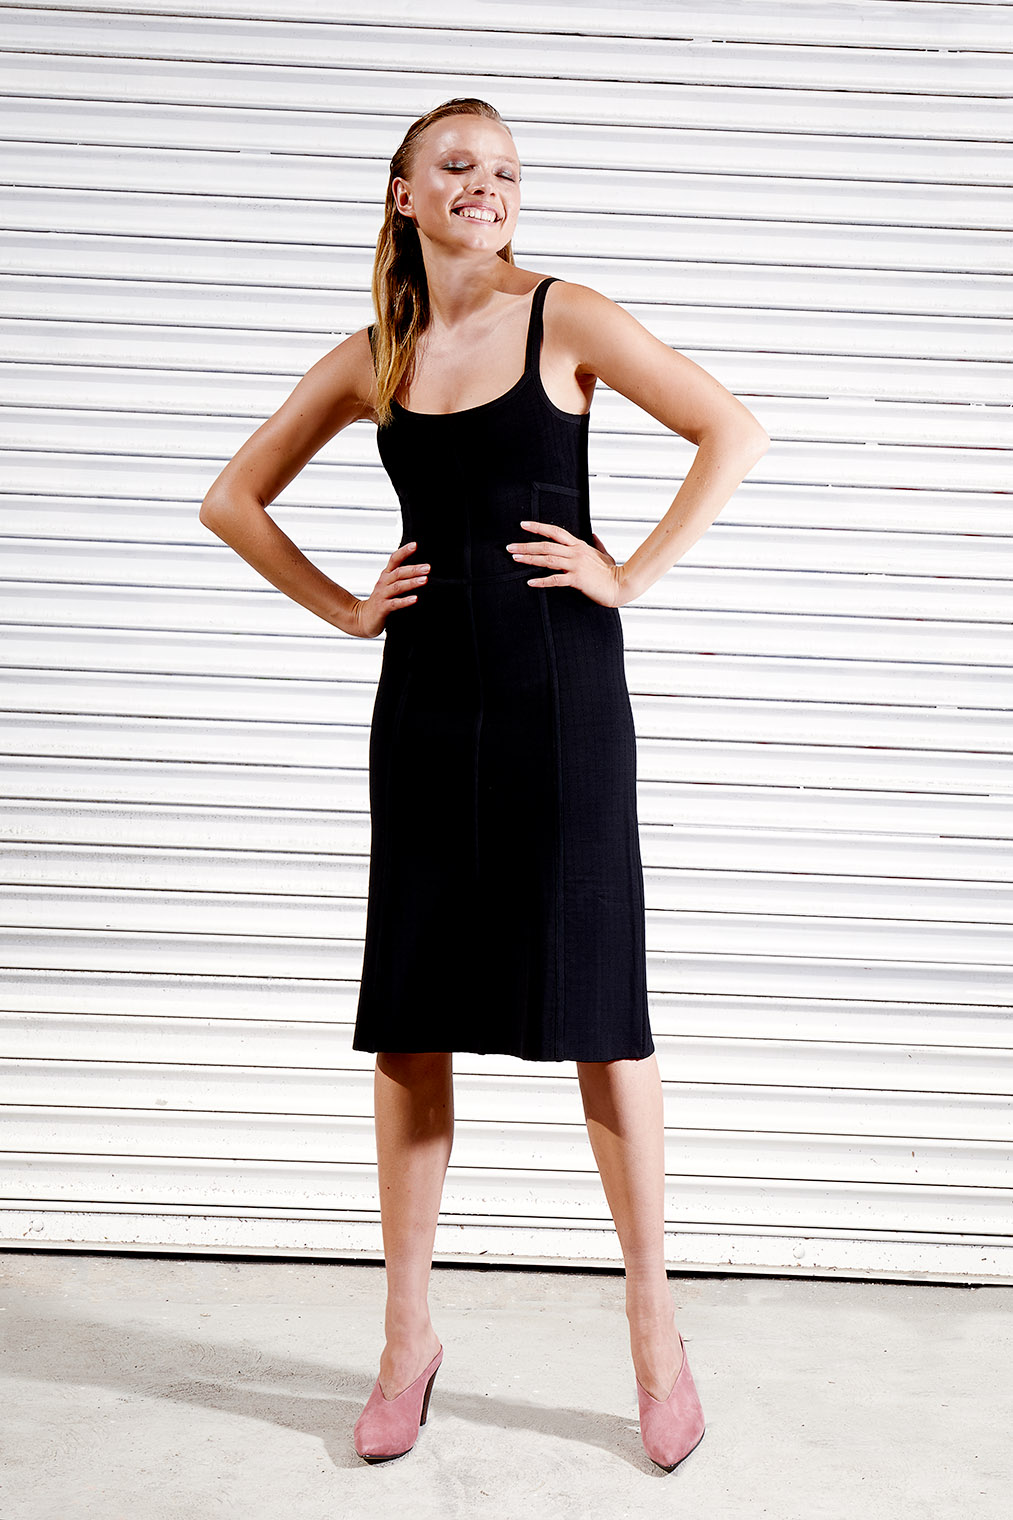 fashion girl with little black dress in front of striped background at fashion shoot in LA